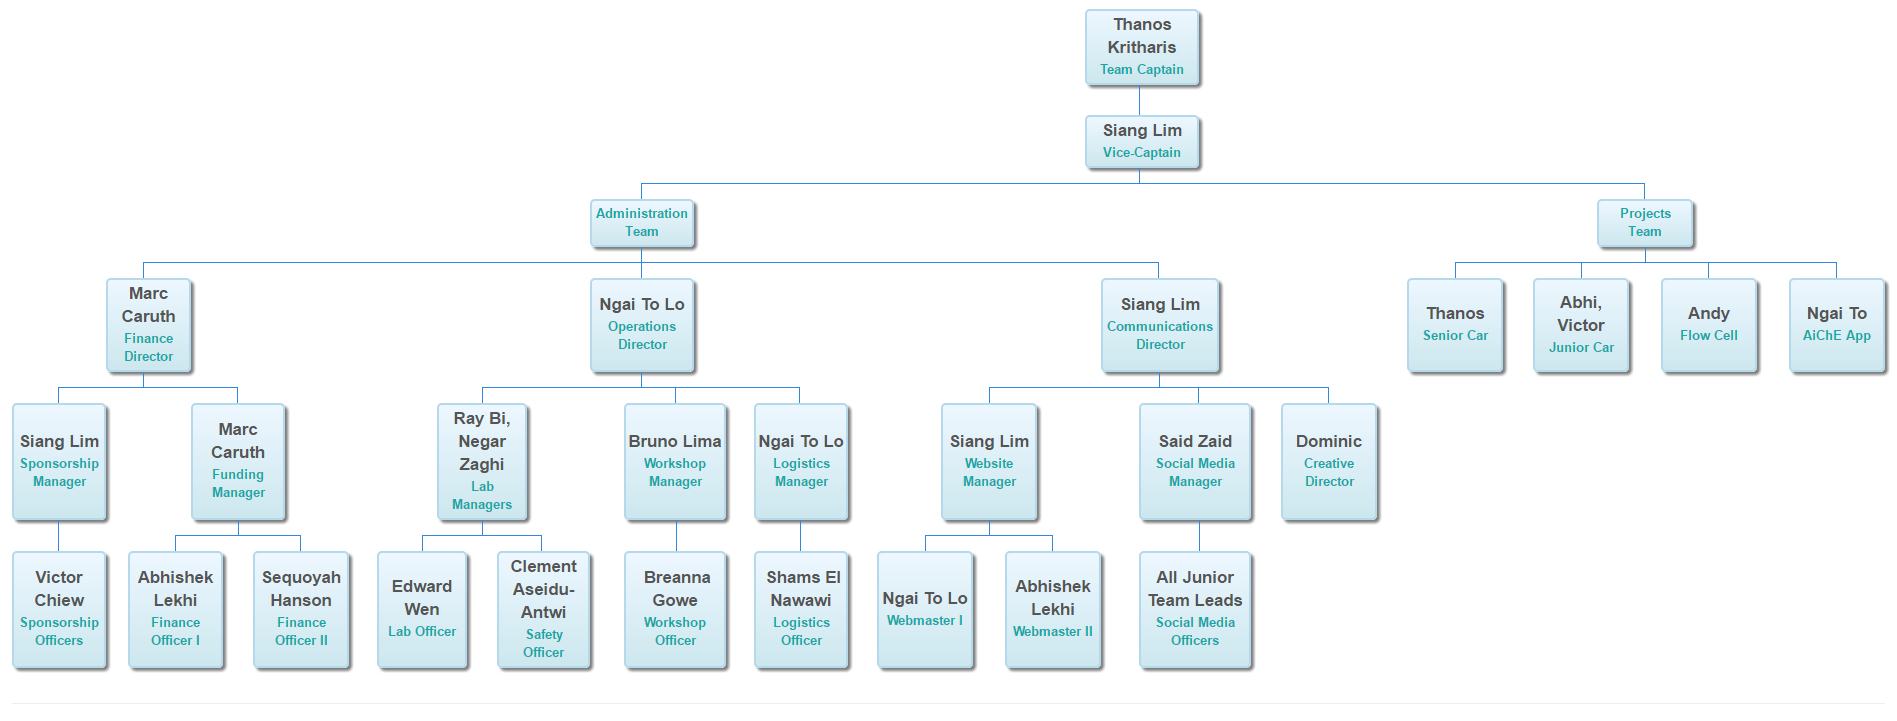 How To Use Google Spreadsheet Charts In How To Create Dynamic Org Charts With Google Sheets And Javascript